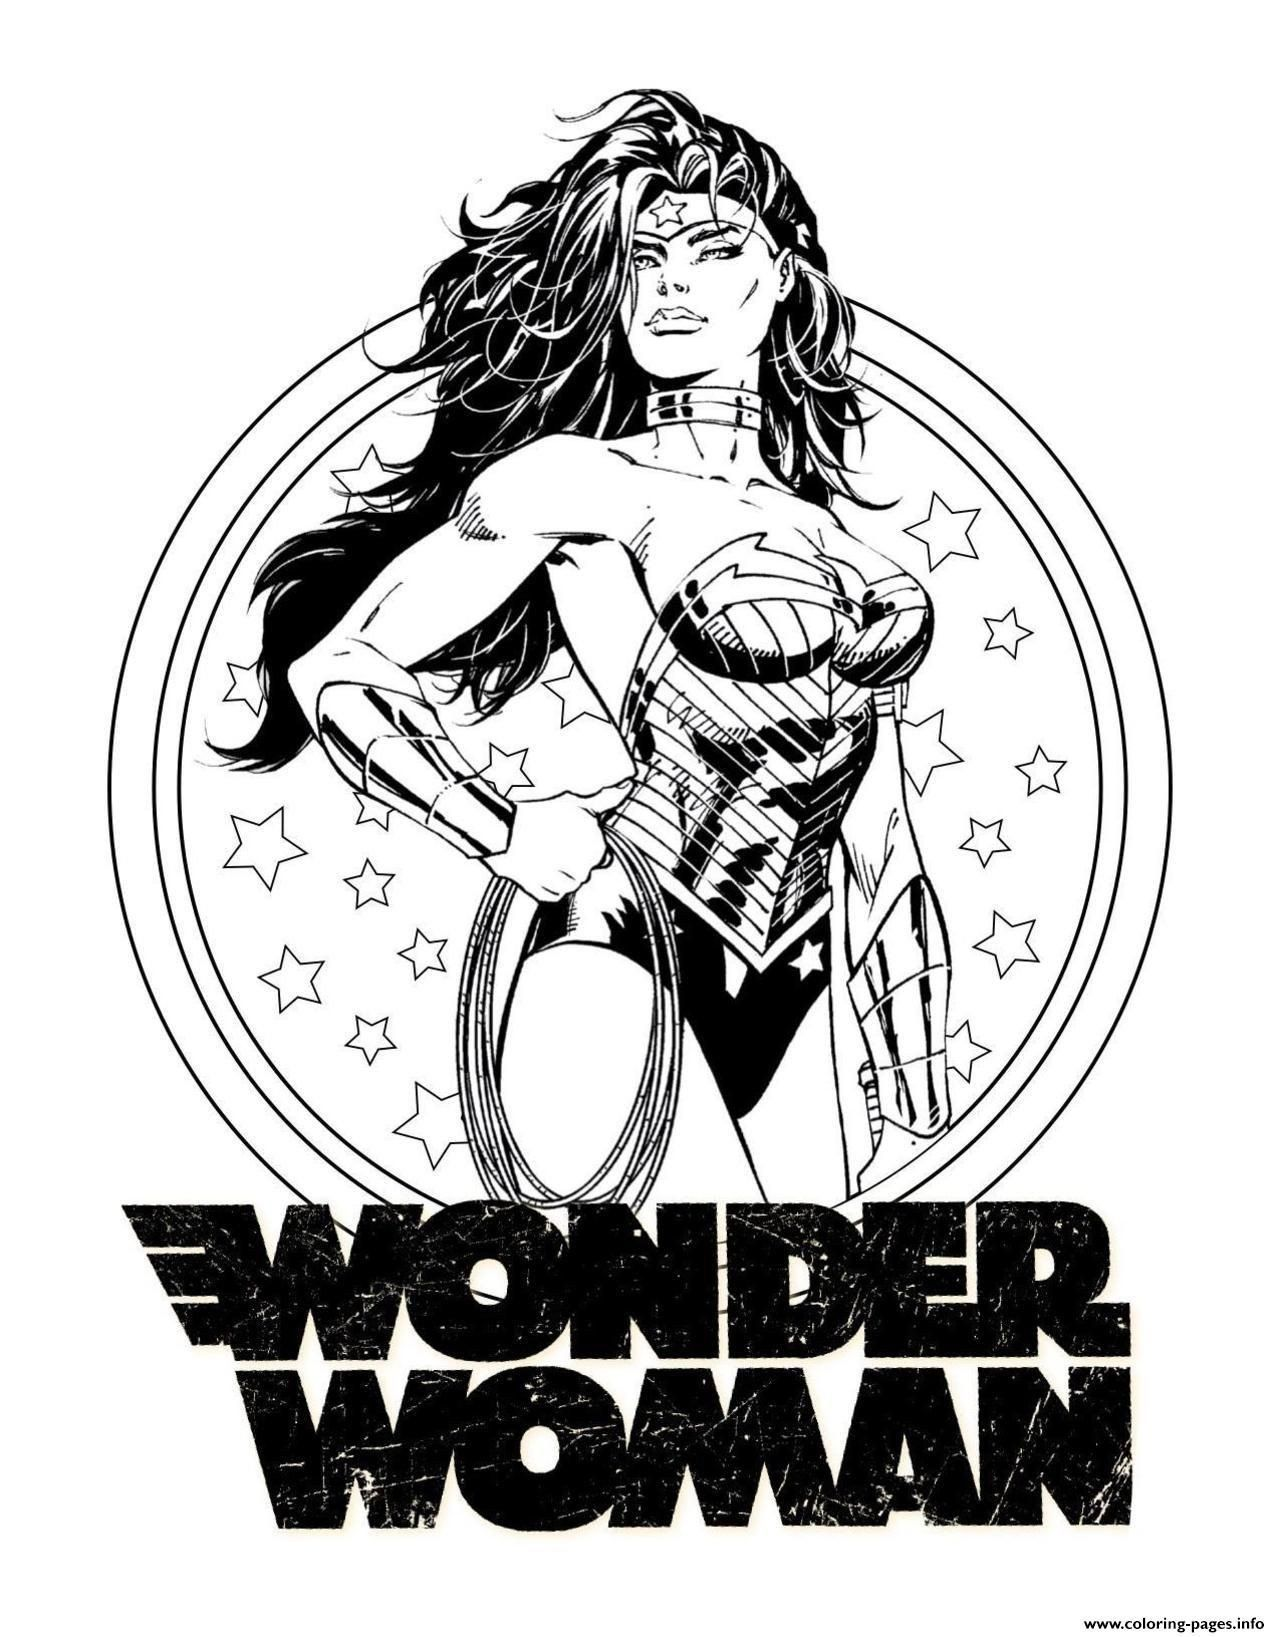 Lego Wonder Woman Coloring Pages Lego Coloring Pages Coloring Pages Superhero Coloring